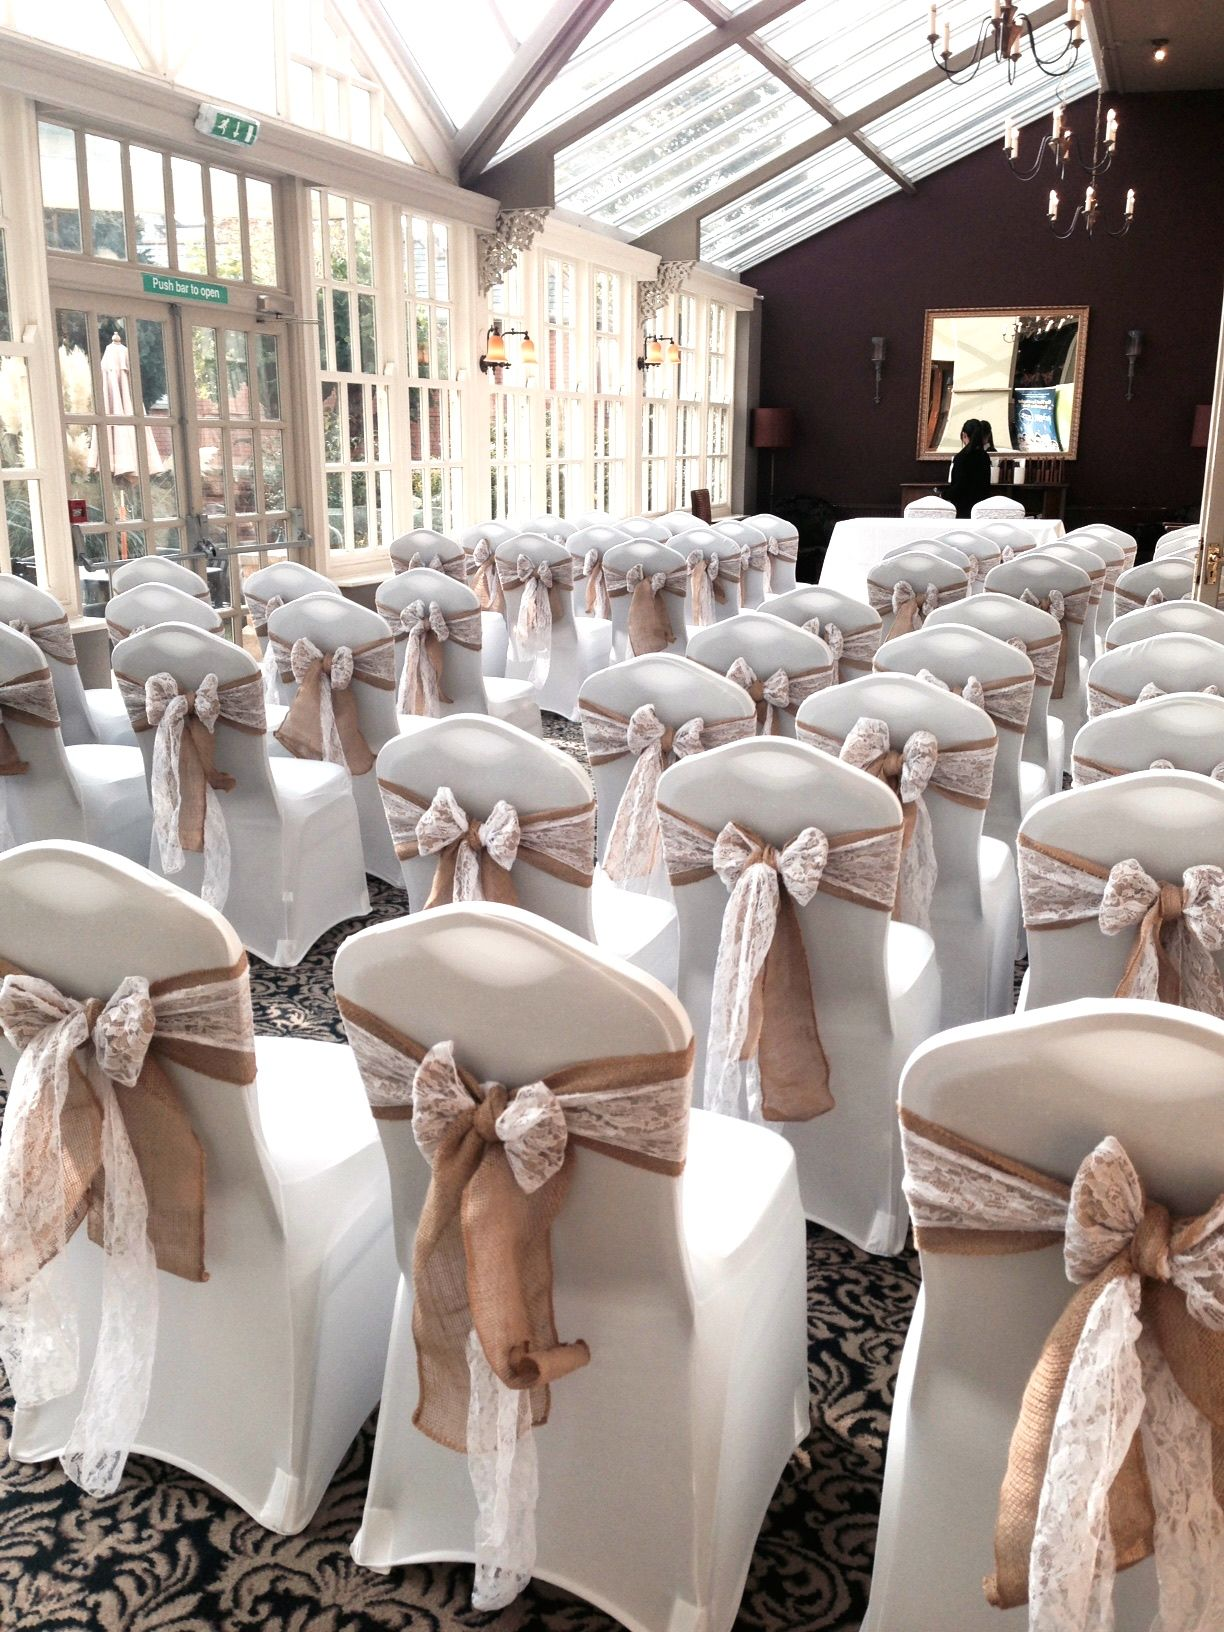 chair covers yeovil round wicker uk hessian and lace sashes at the manor hotel wedding decor by